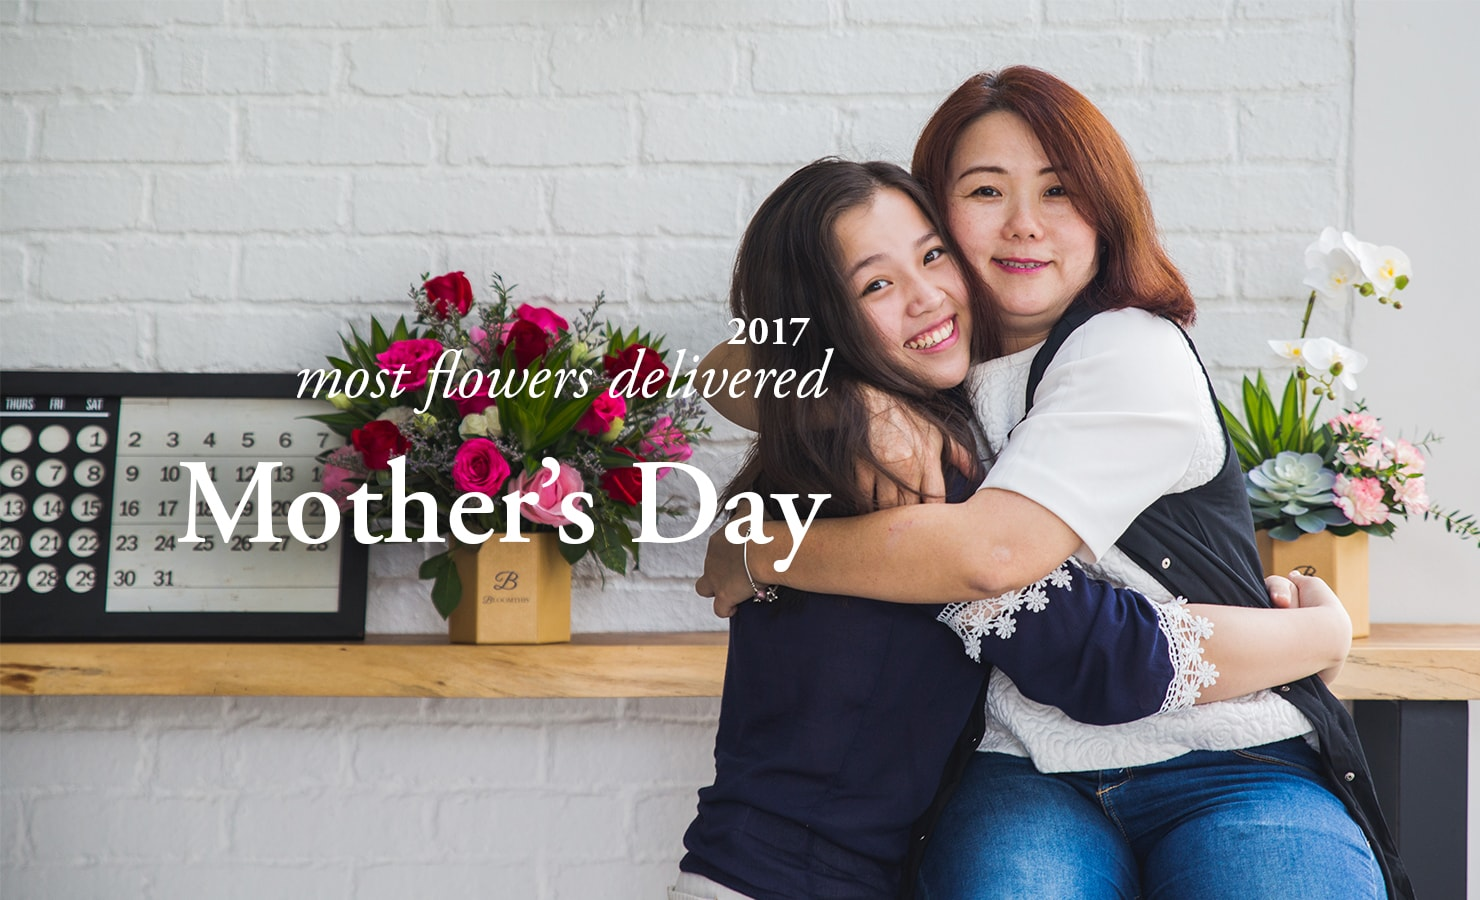 05-most-flowers-delivered-mothers-day